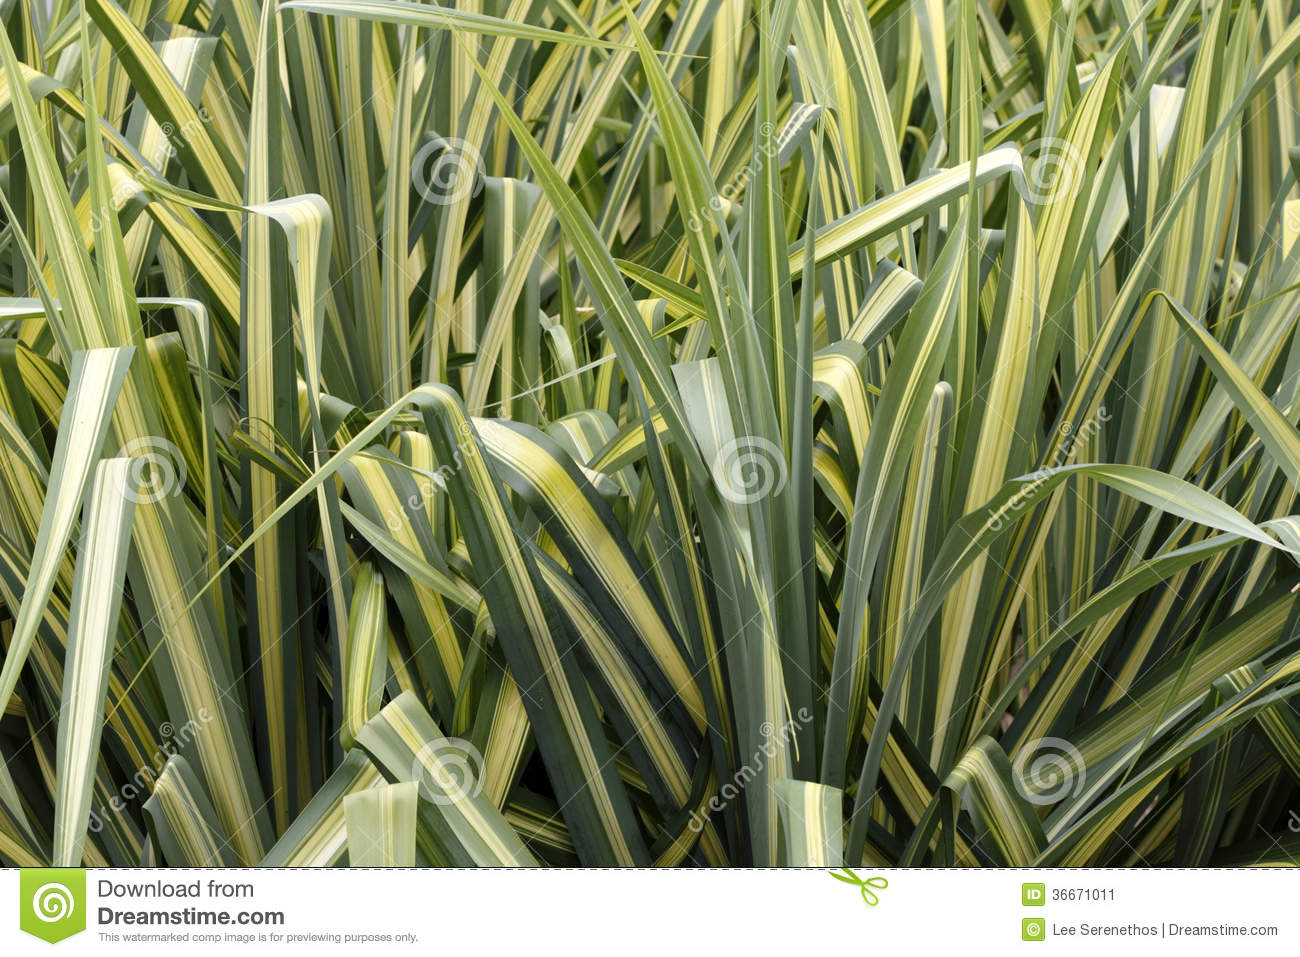 Variegated sedge grass stock image image of blade for Variegated ornamental grass